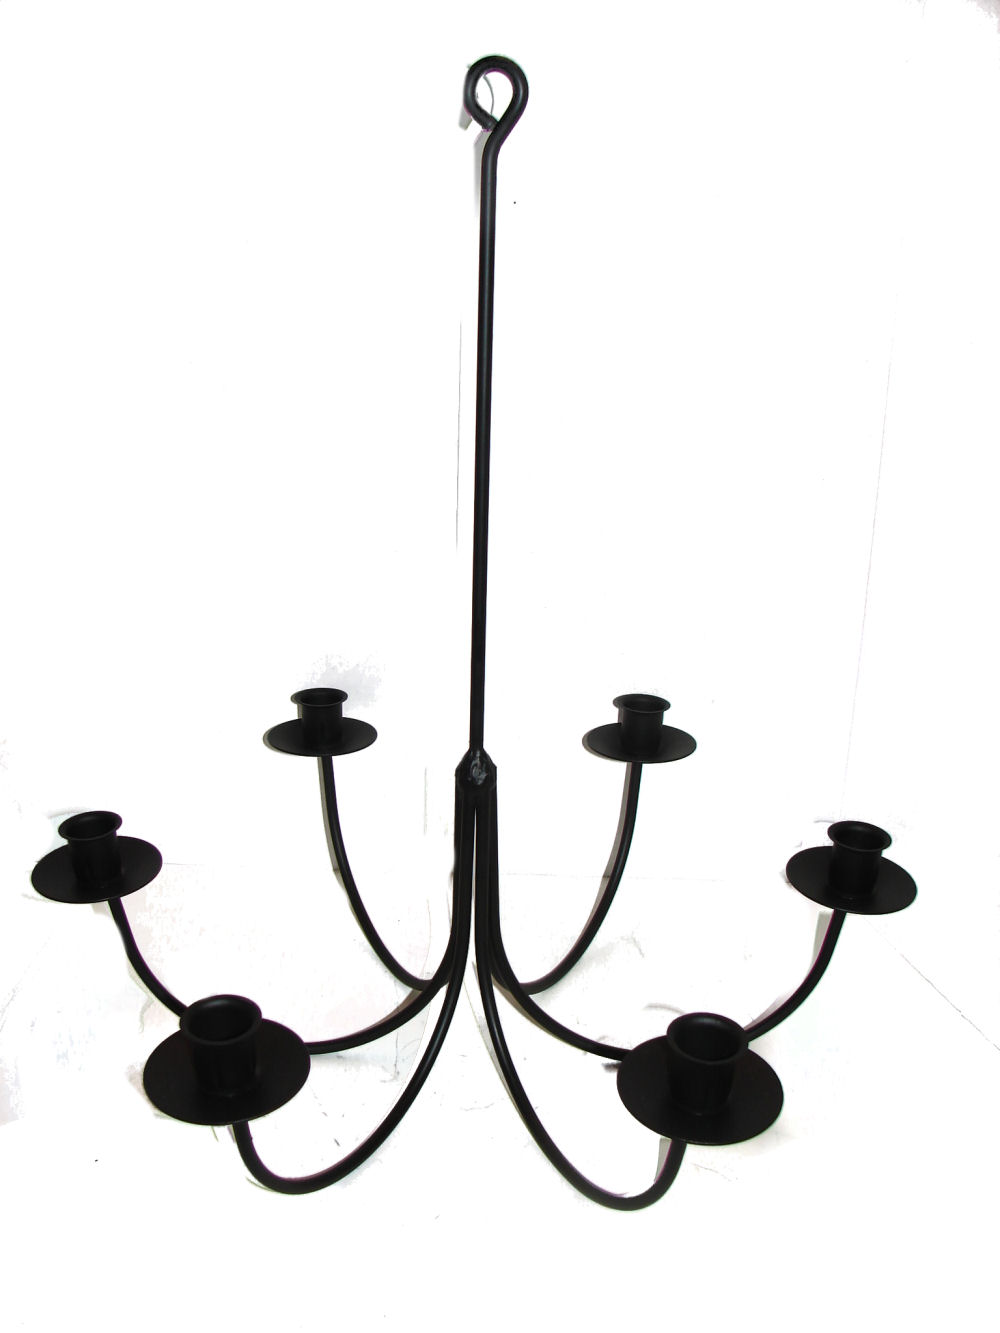 Wrought iron chandeliers and hanging candle holders candoliers this hand wrought 6 arm non electric candolier is right at home over any farm table with classic style and functional design this candle holder will blend mozeypictures Gallery